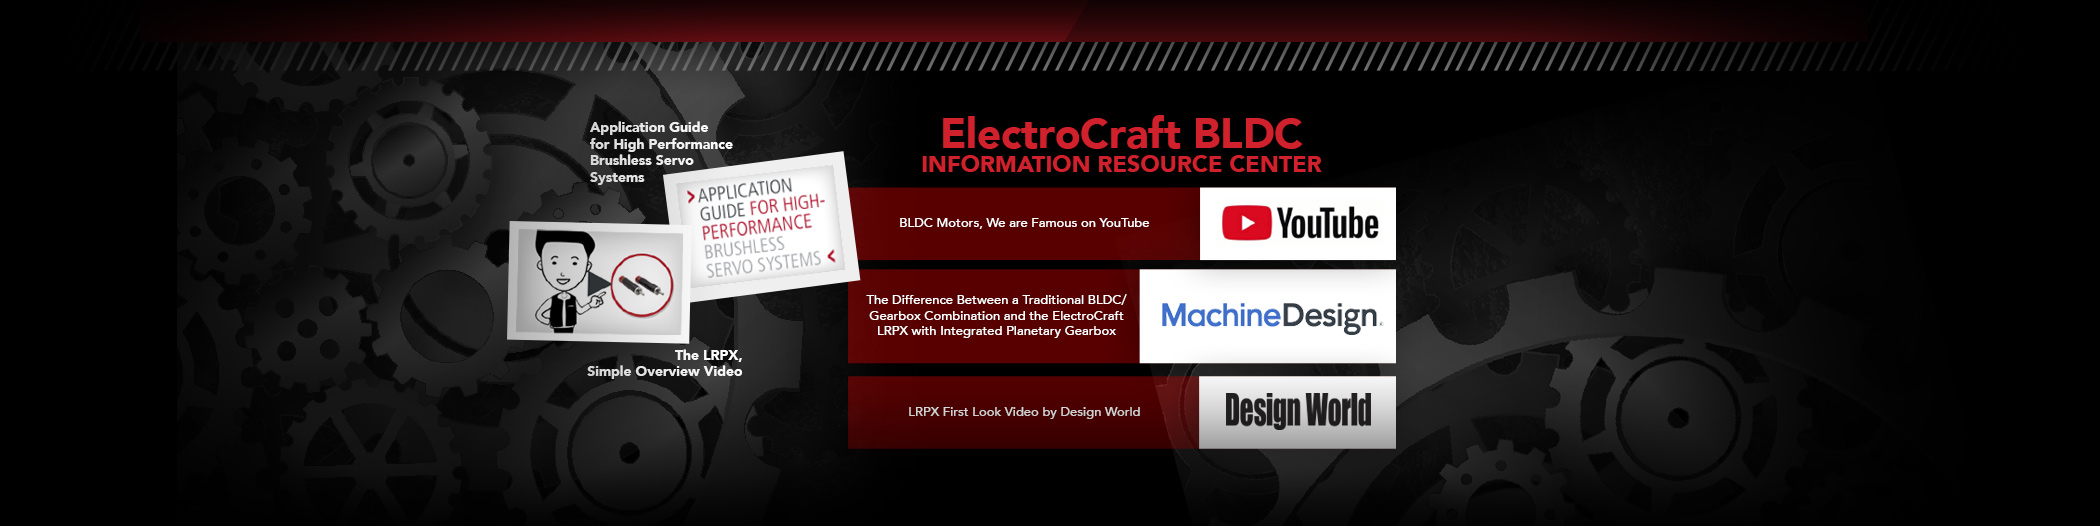 ElectroCraft BLDC Information Resource Center